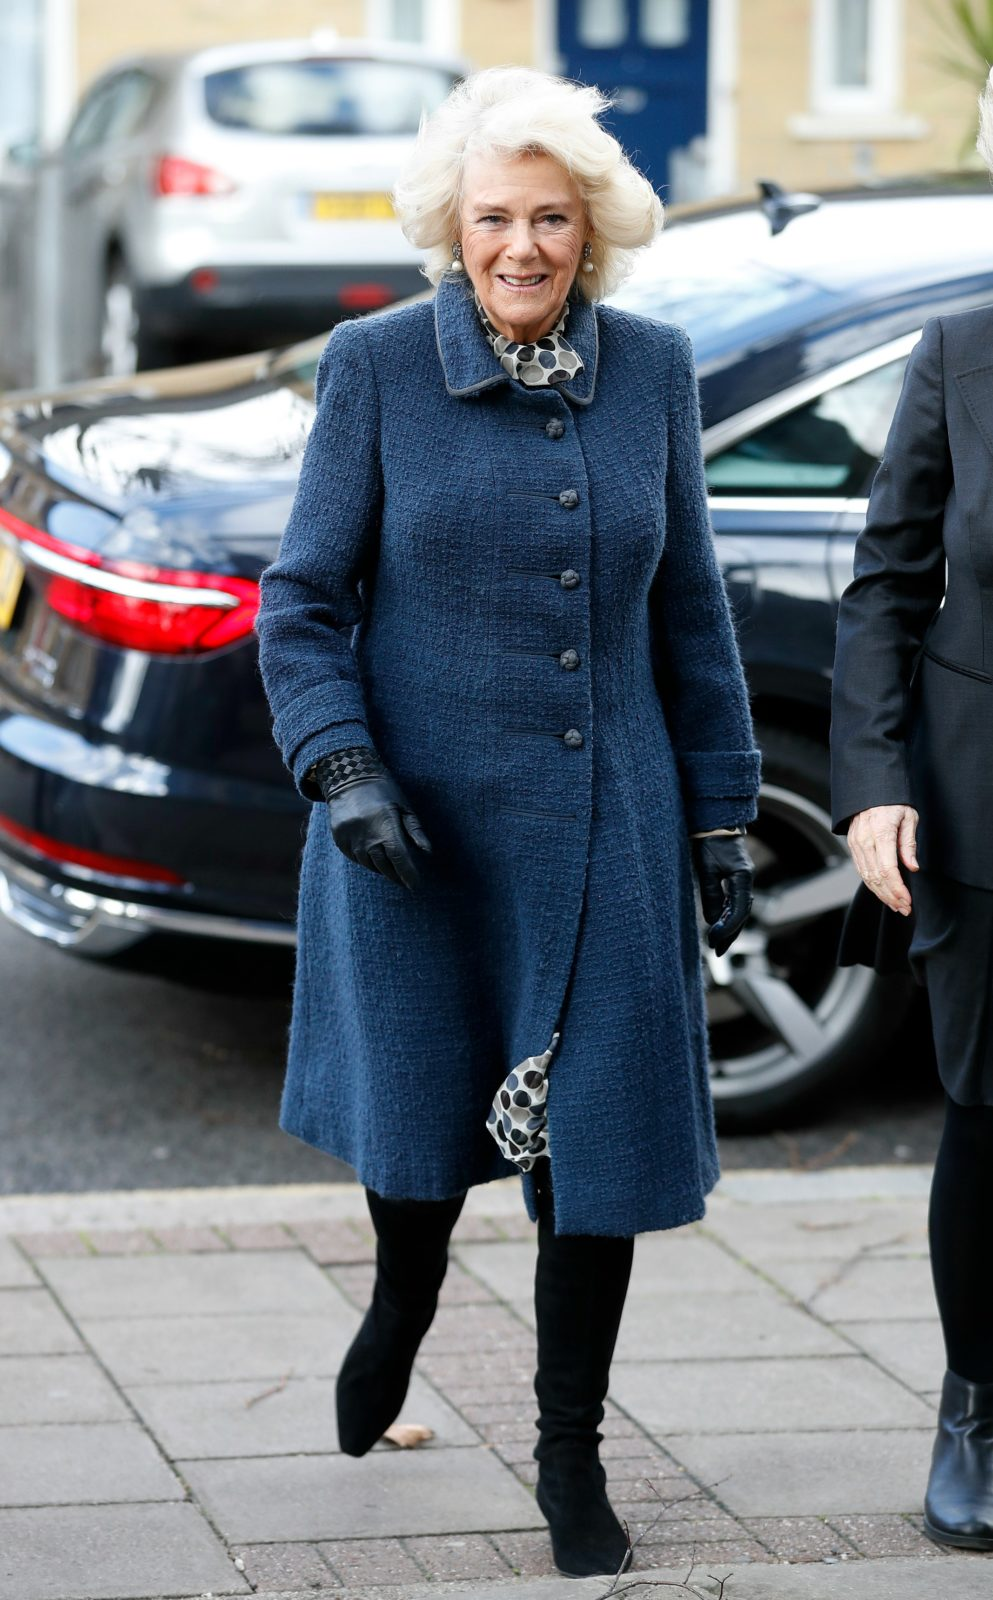 Camilla looked effortlessly stylish in the blue outfit. Source: Getty.